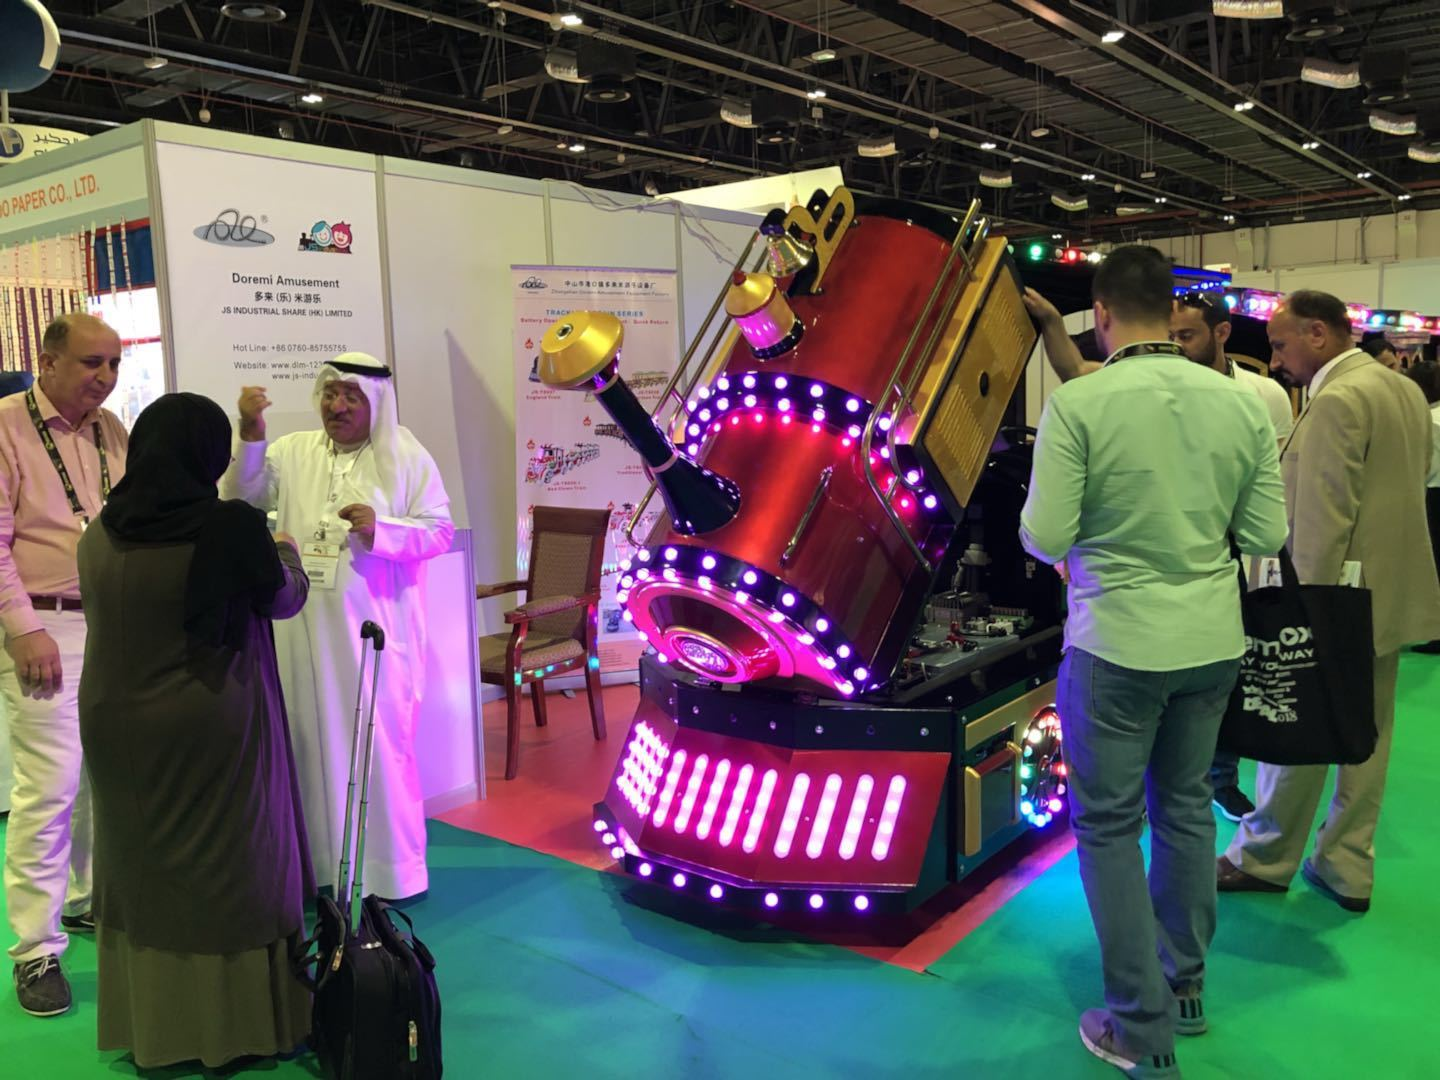 [Exhibition News] Deal Show in Dubai, 2018